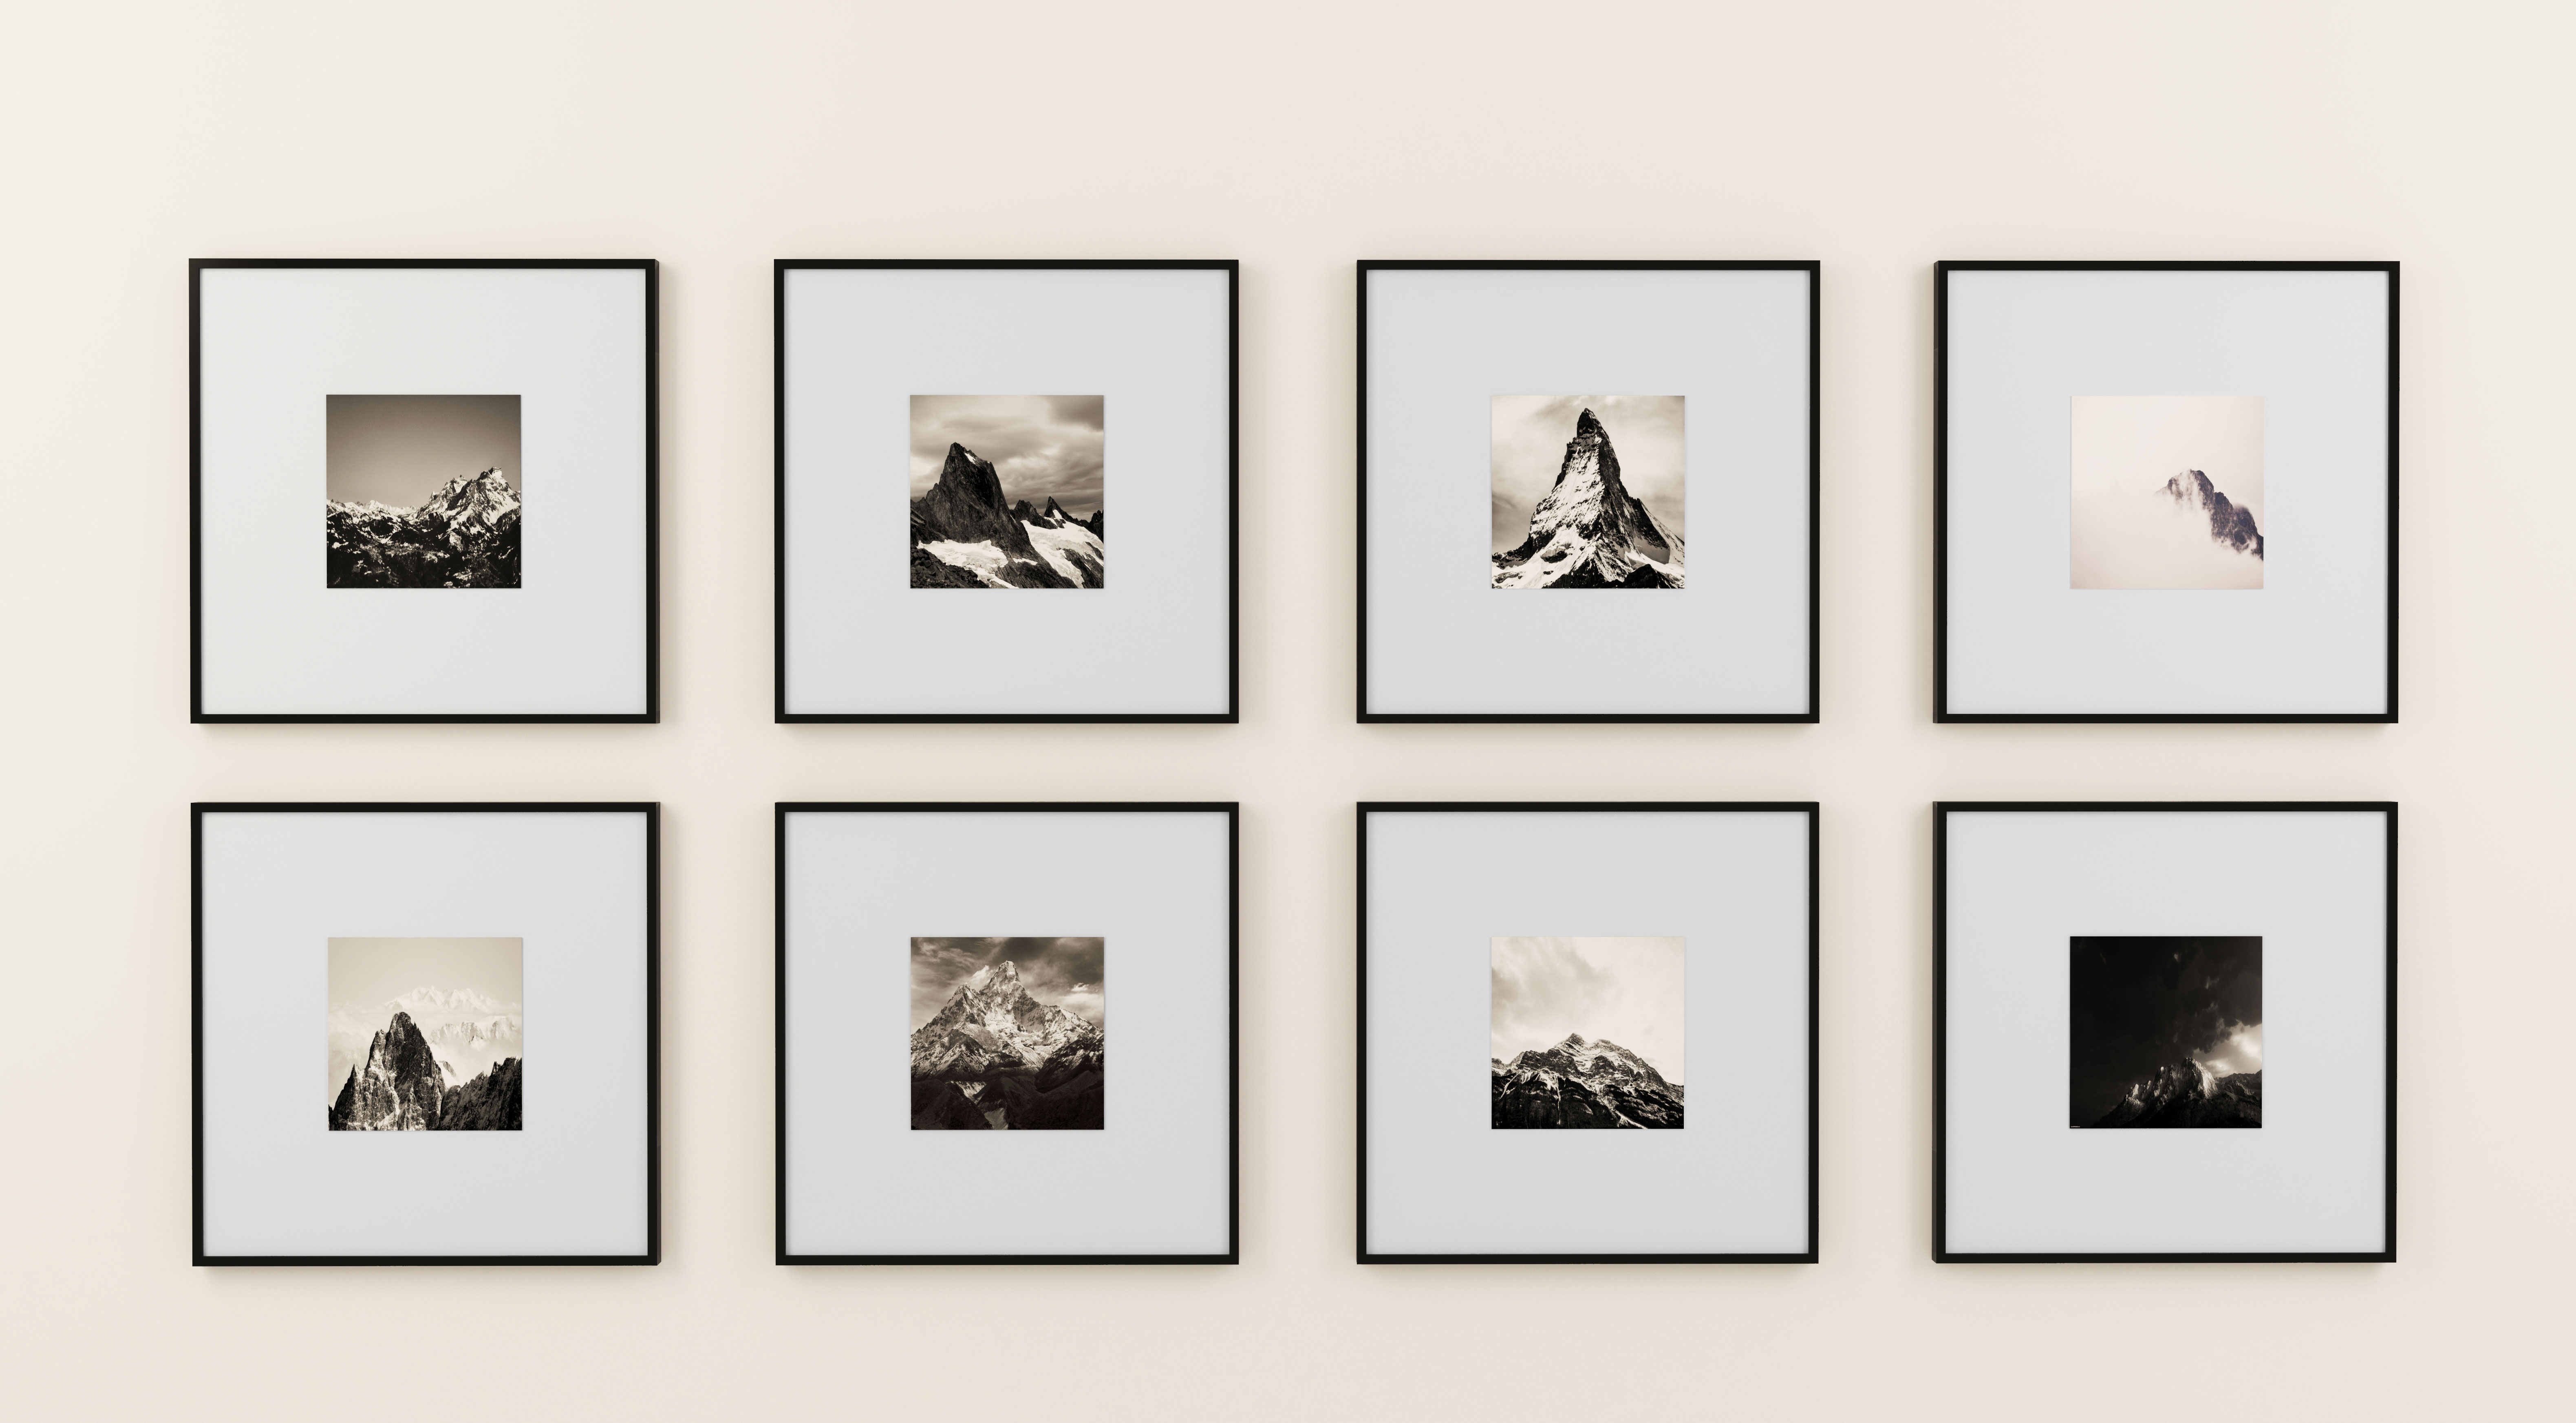 Eight Black And White Photographs Of Mountains Nicely Custom Framed